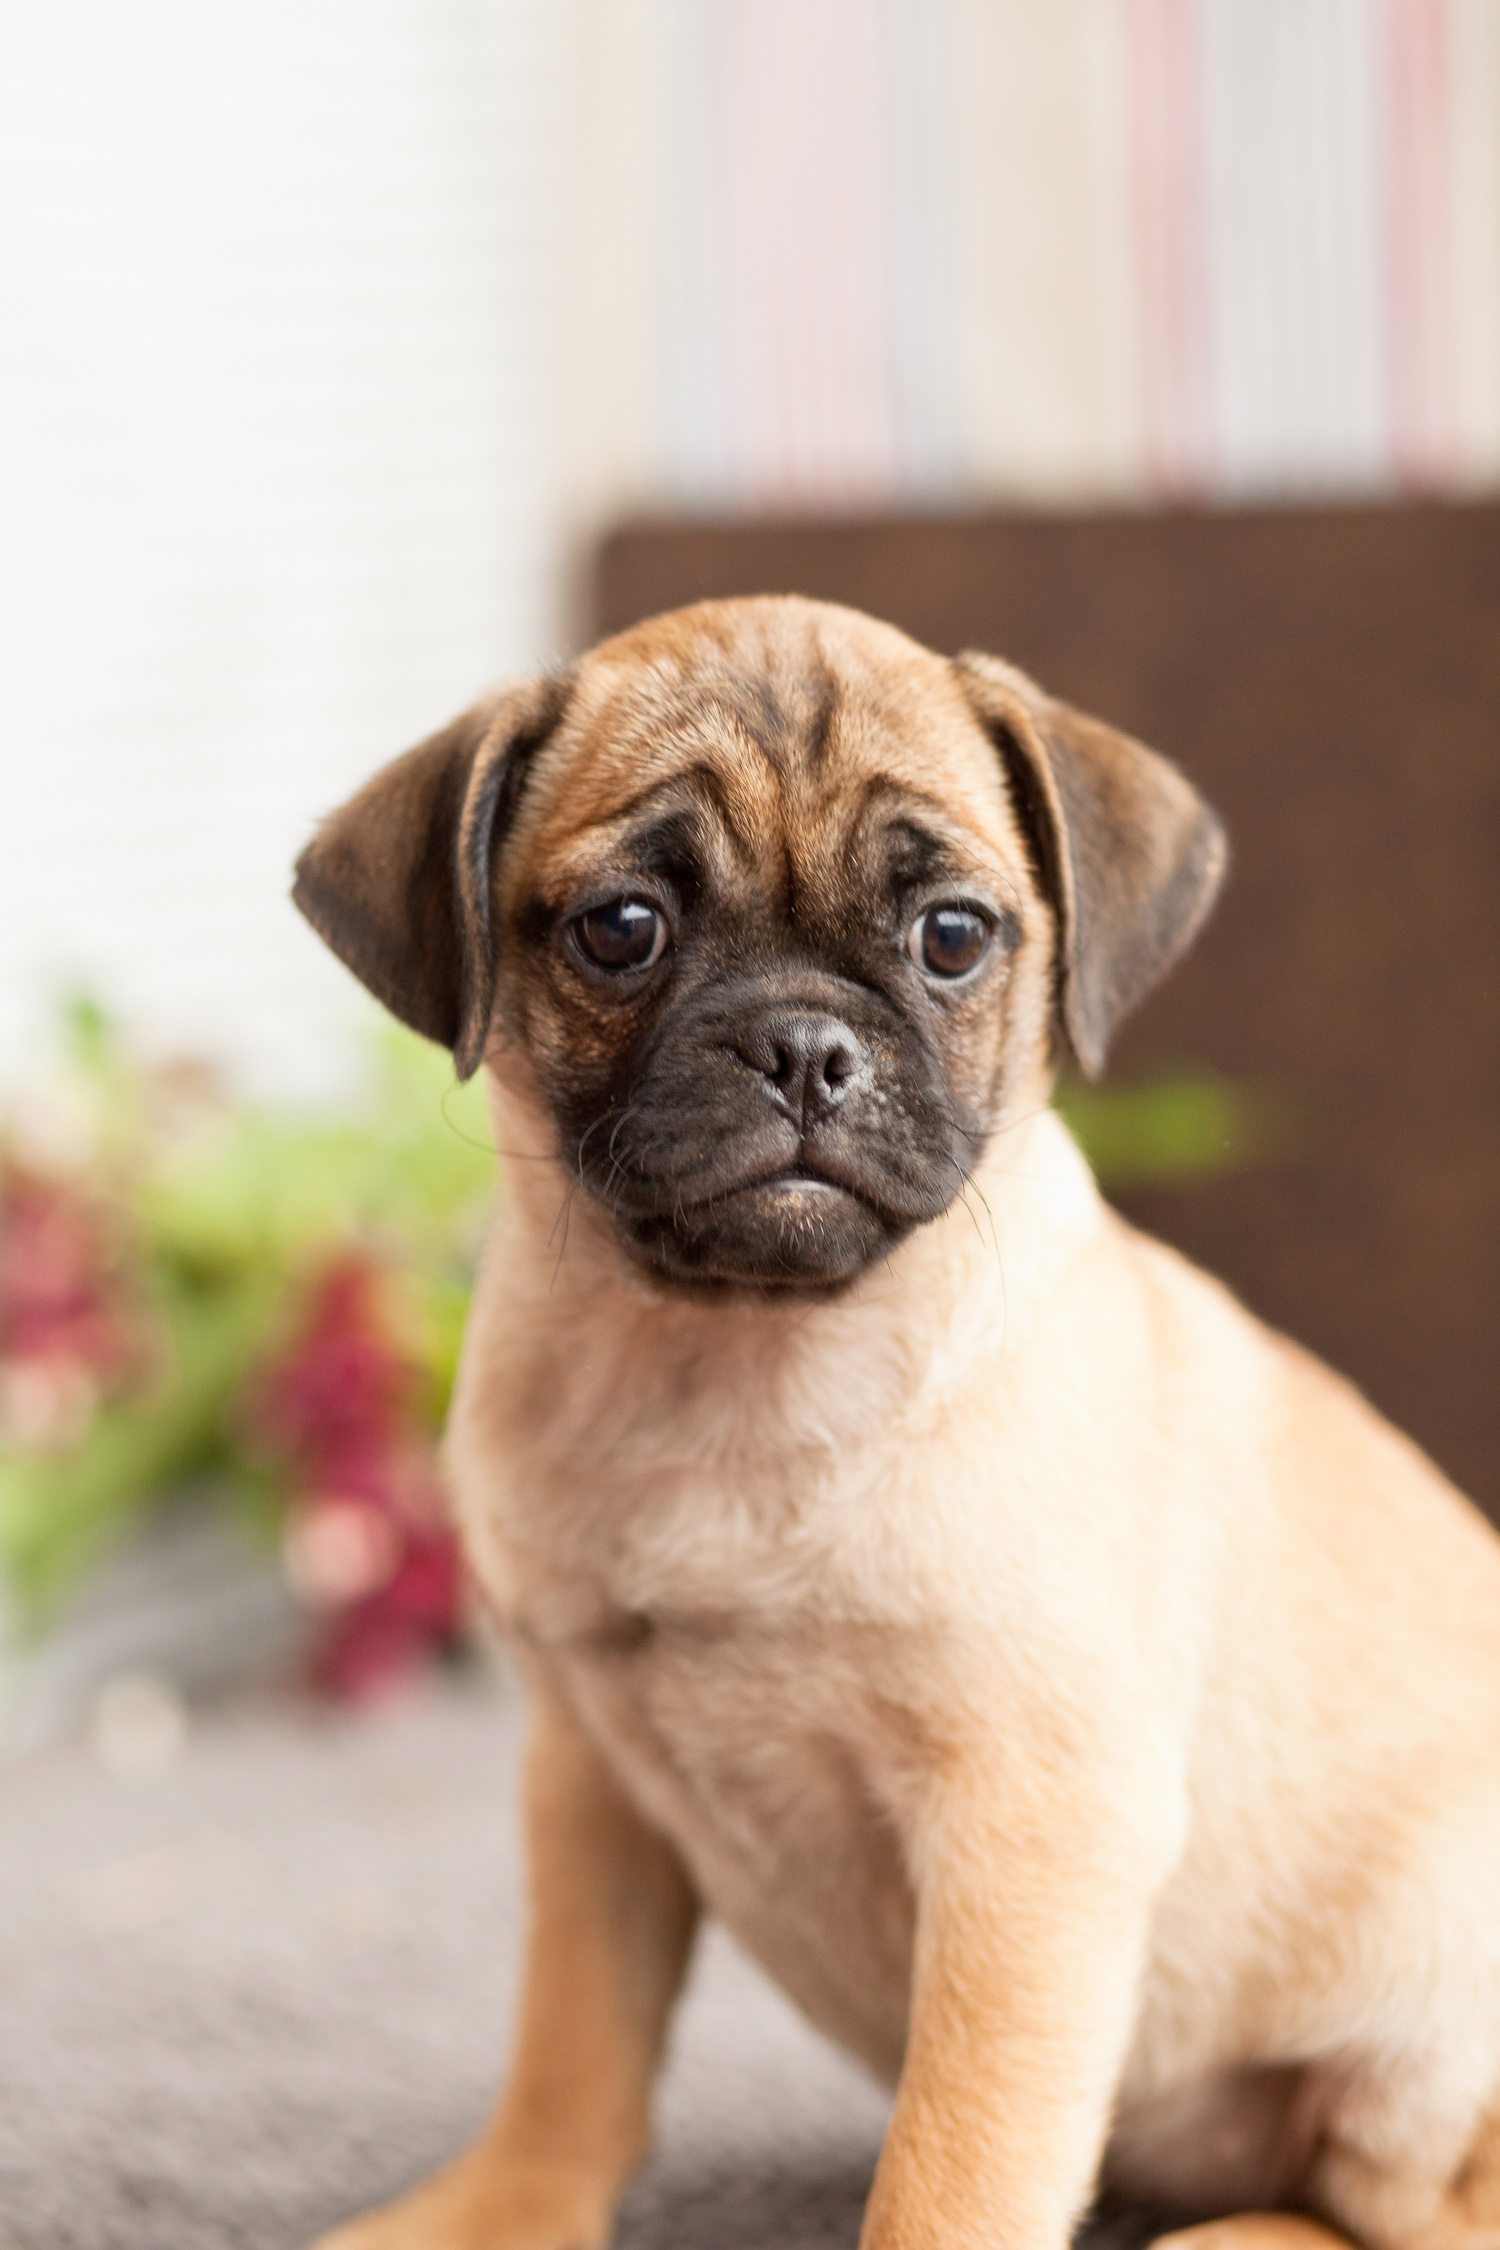 How to Care for Puggles